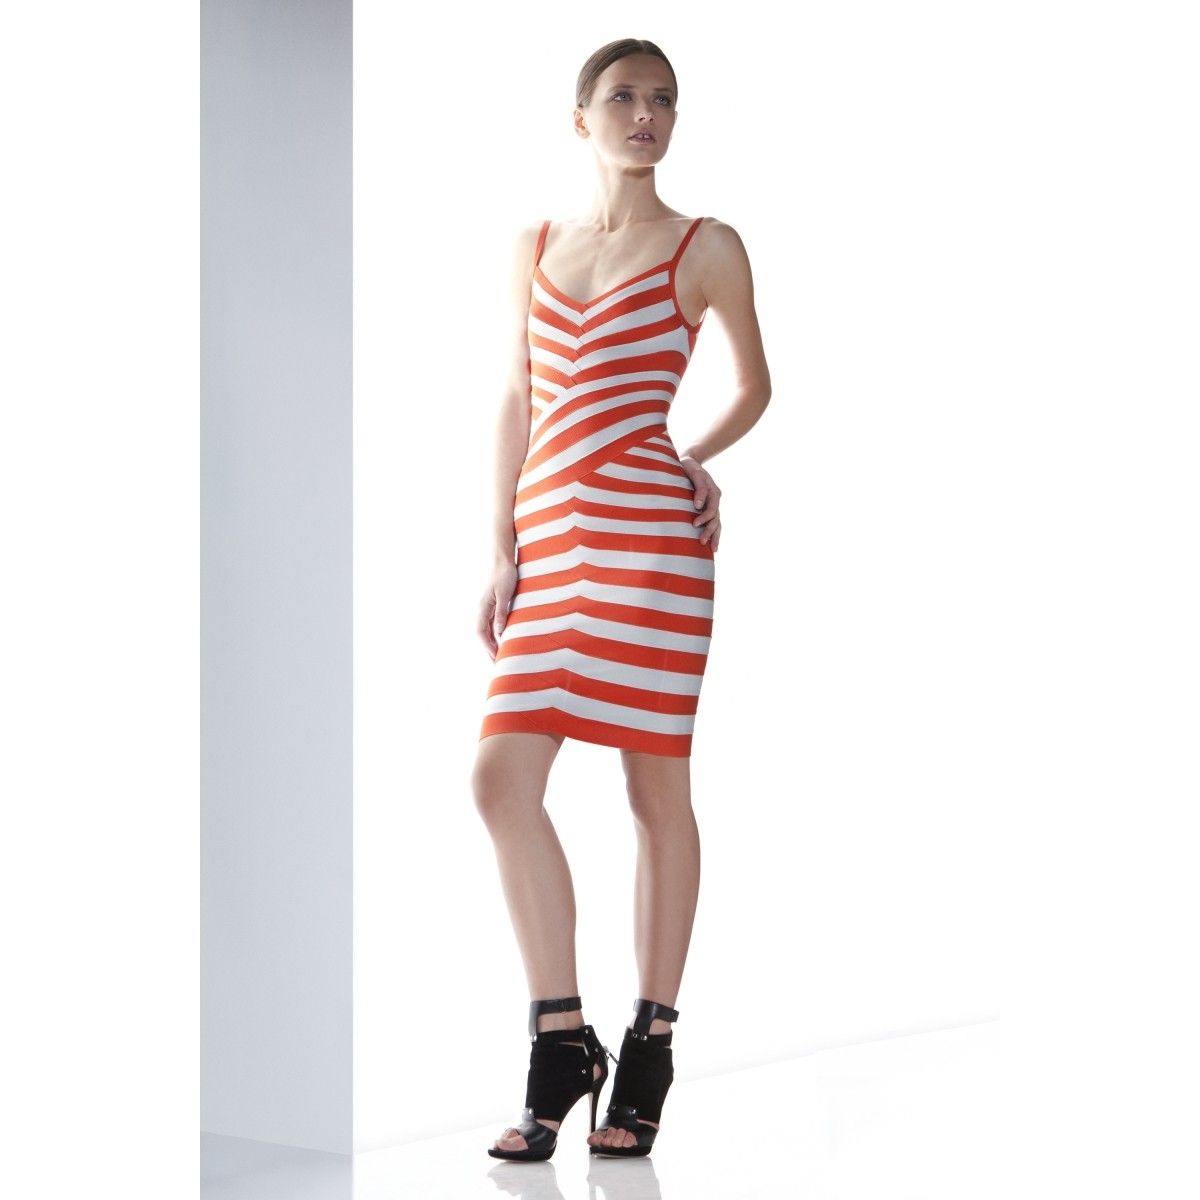 Herve Leger Andreea Striped Bandage Dress